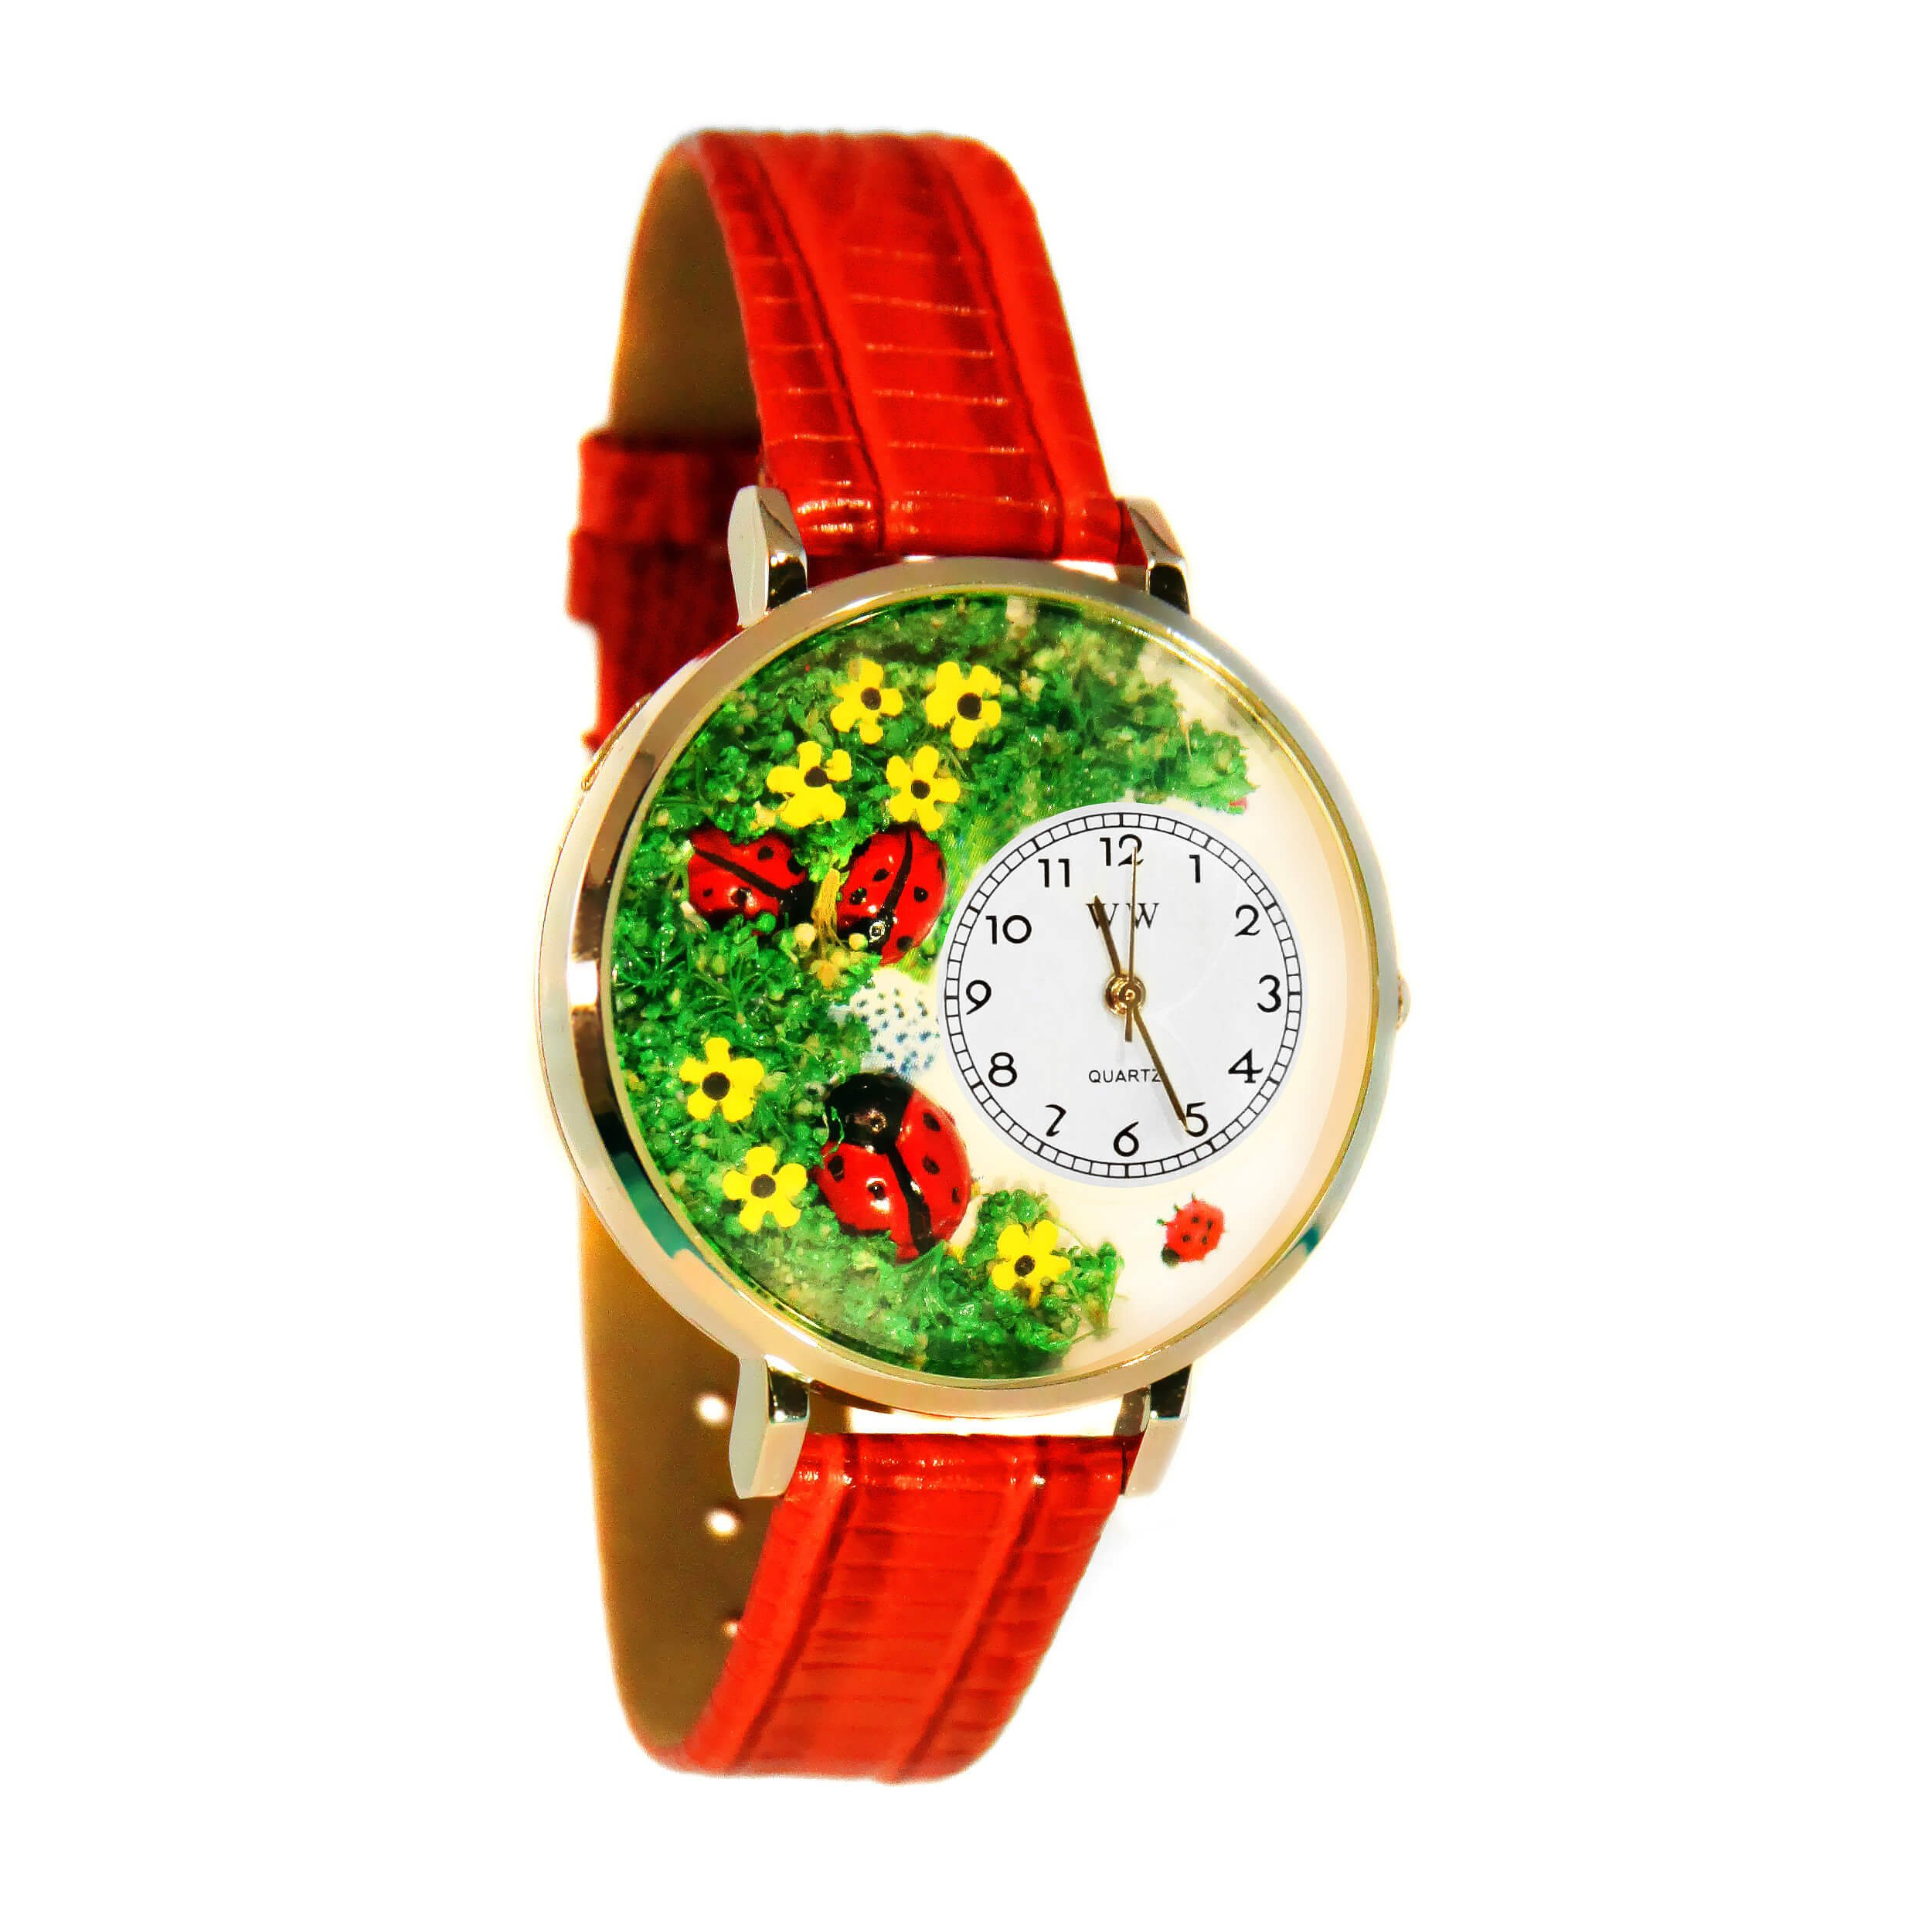 Whimsical Watches Women's G1210004 Lady Bugs Red Leather Watch